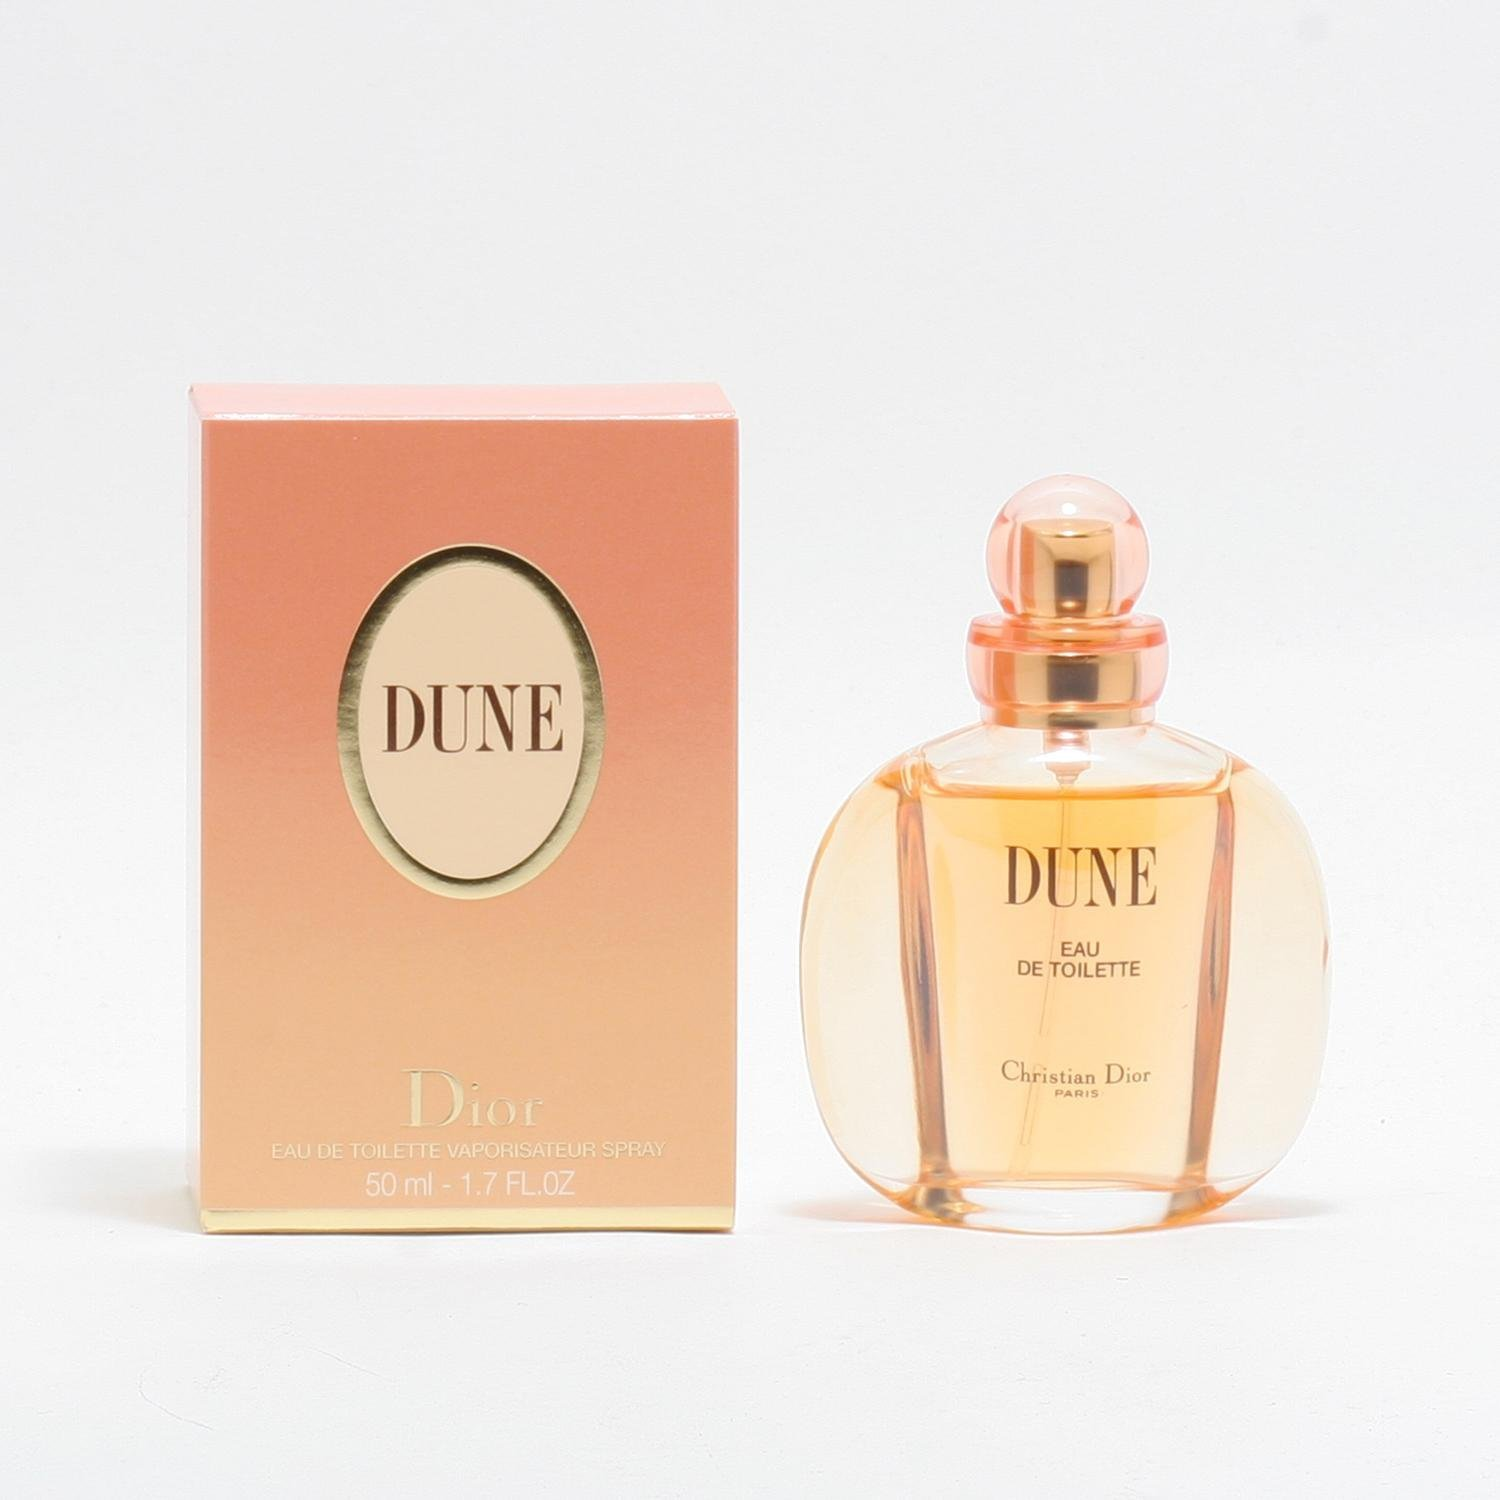 Dune Perfume By Christiãn Diõr Eau De Toilette Spray For Women 1.7 OZ.